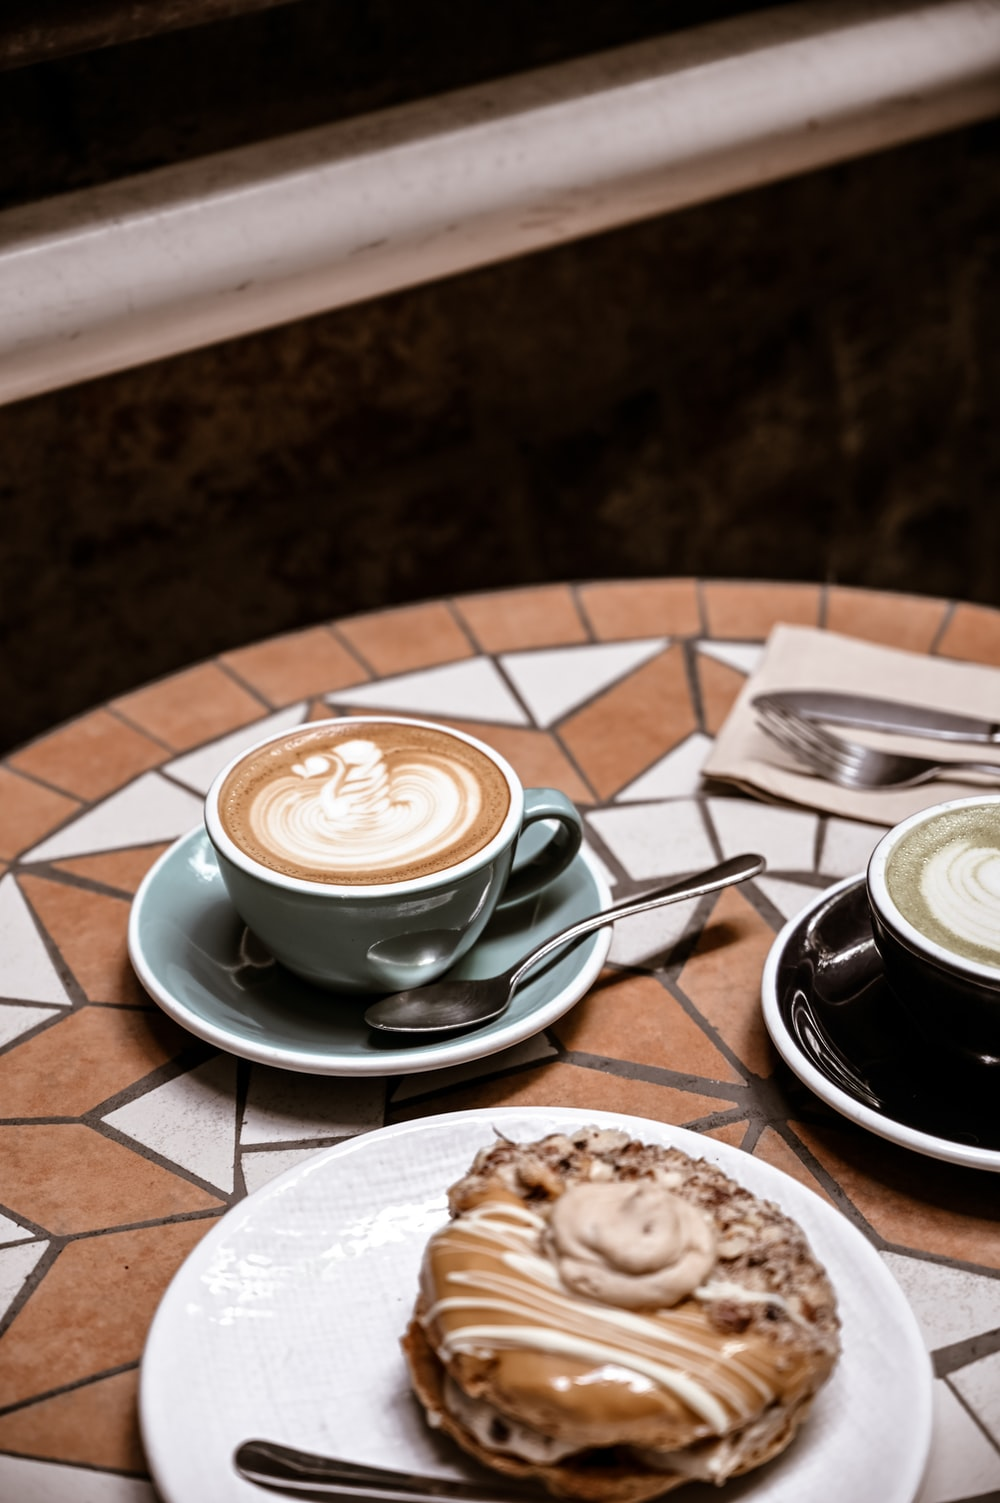 cappuccino in white ceramic cup on saucer beside stainless steel spoon on table